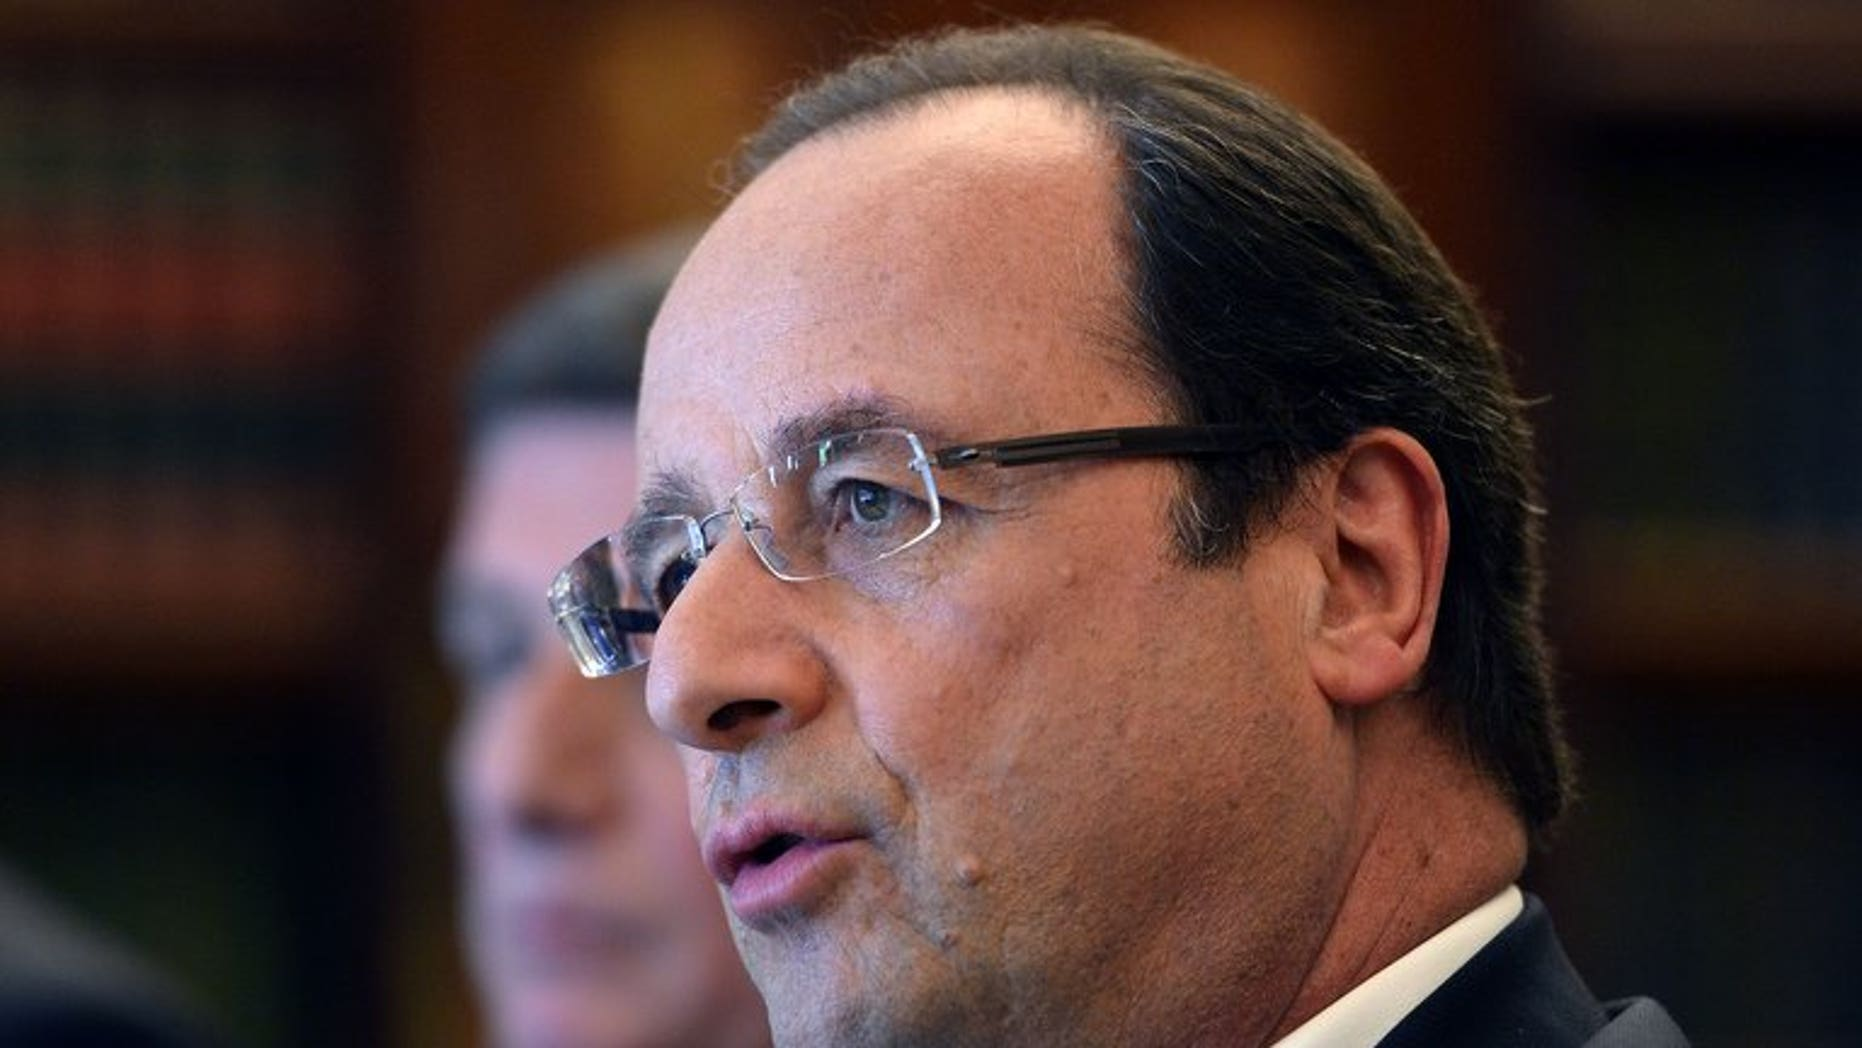 """French President Francois Hollande speaks during a bilateral meeting on the sidelines of the G8 summit near Enniskillen, Northern Ireland on June 18, 2013. Hollande said Tuesday that Iranian president-elect Hassan Rowhani would be welcome at Syria peace talks """"if he can be useful""""."""